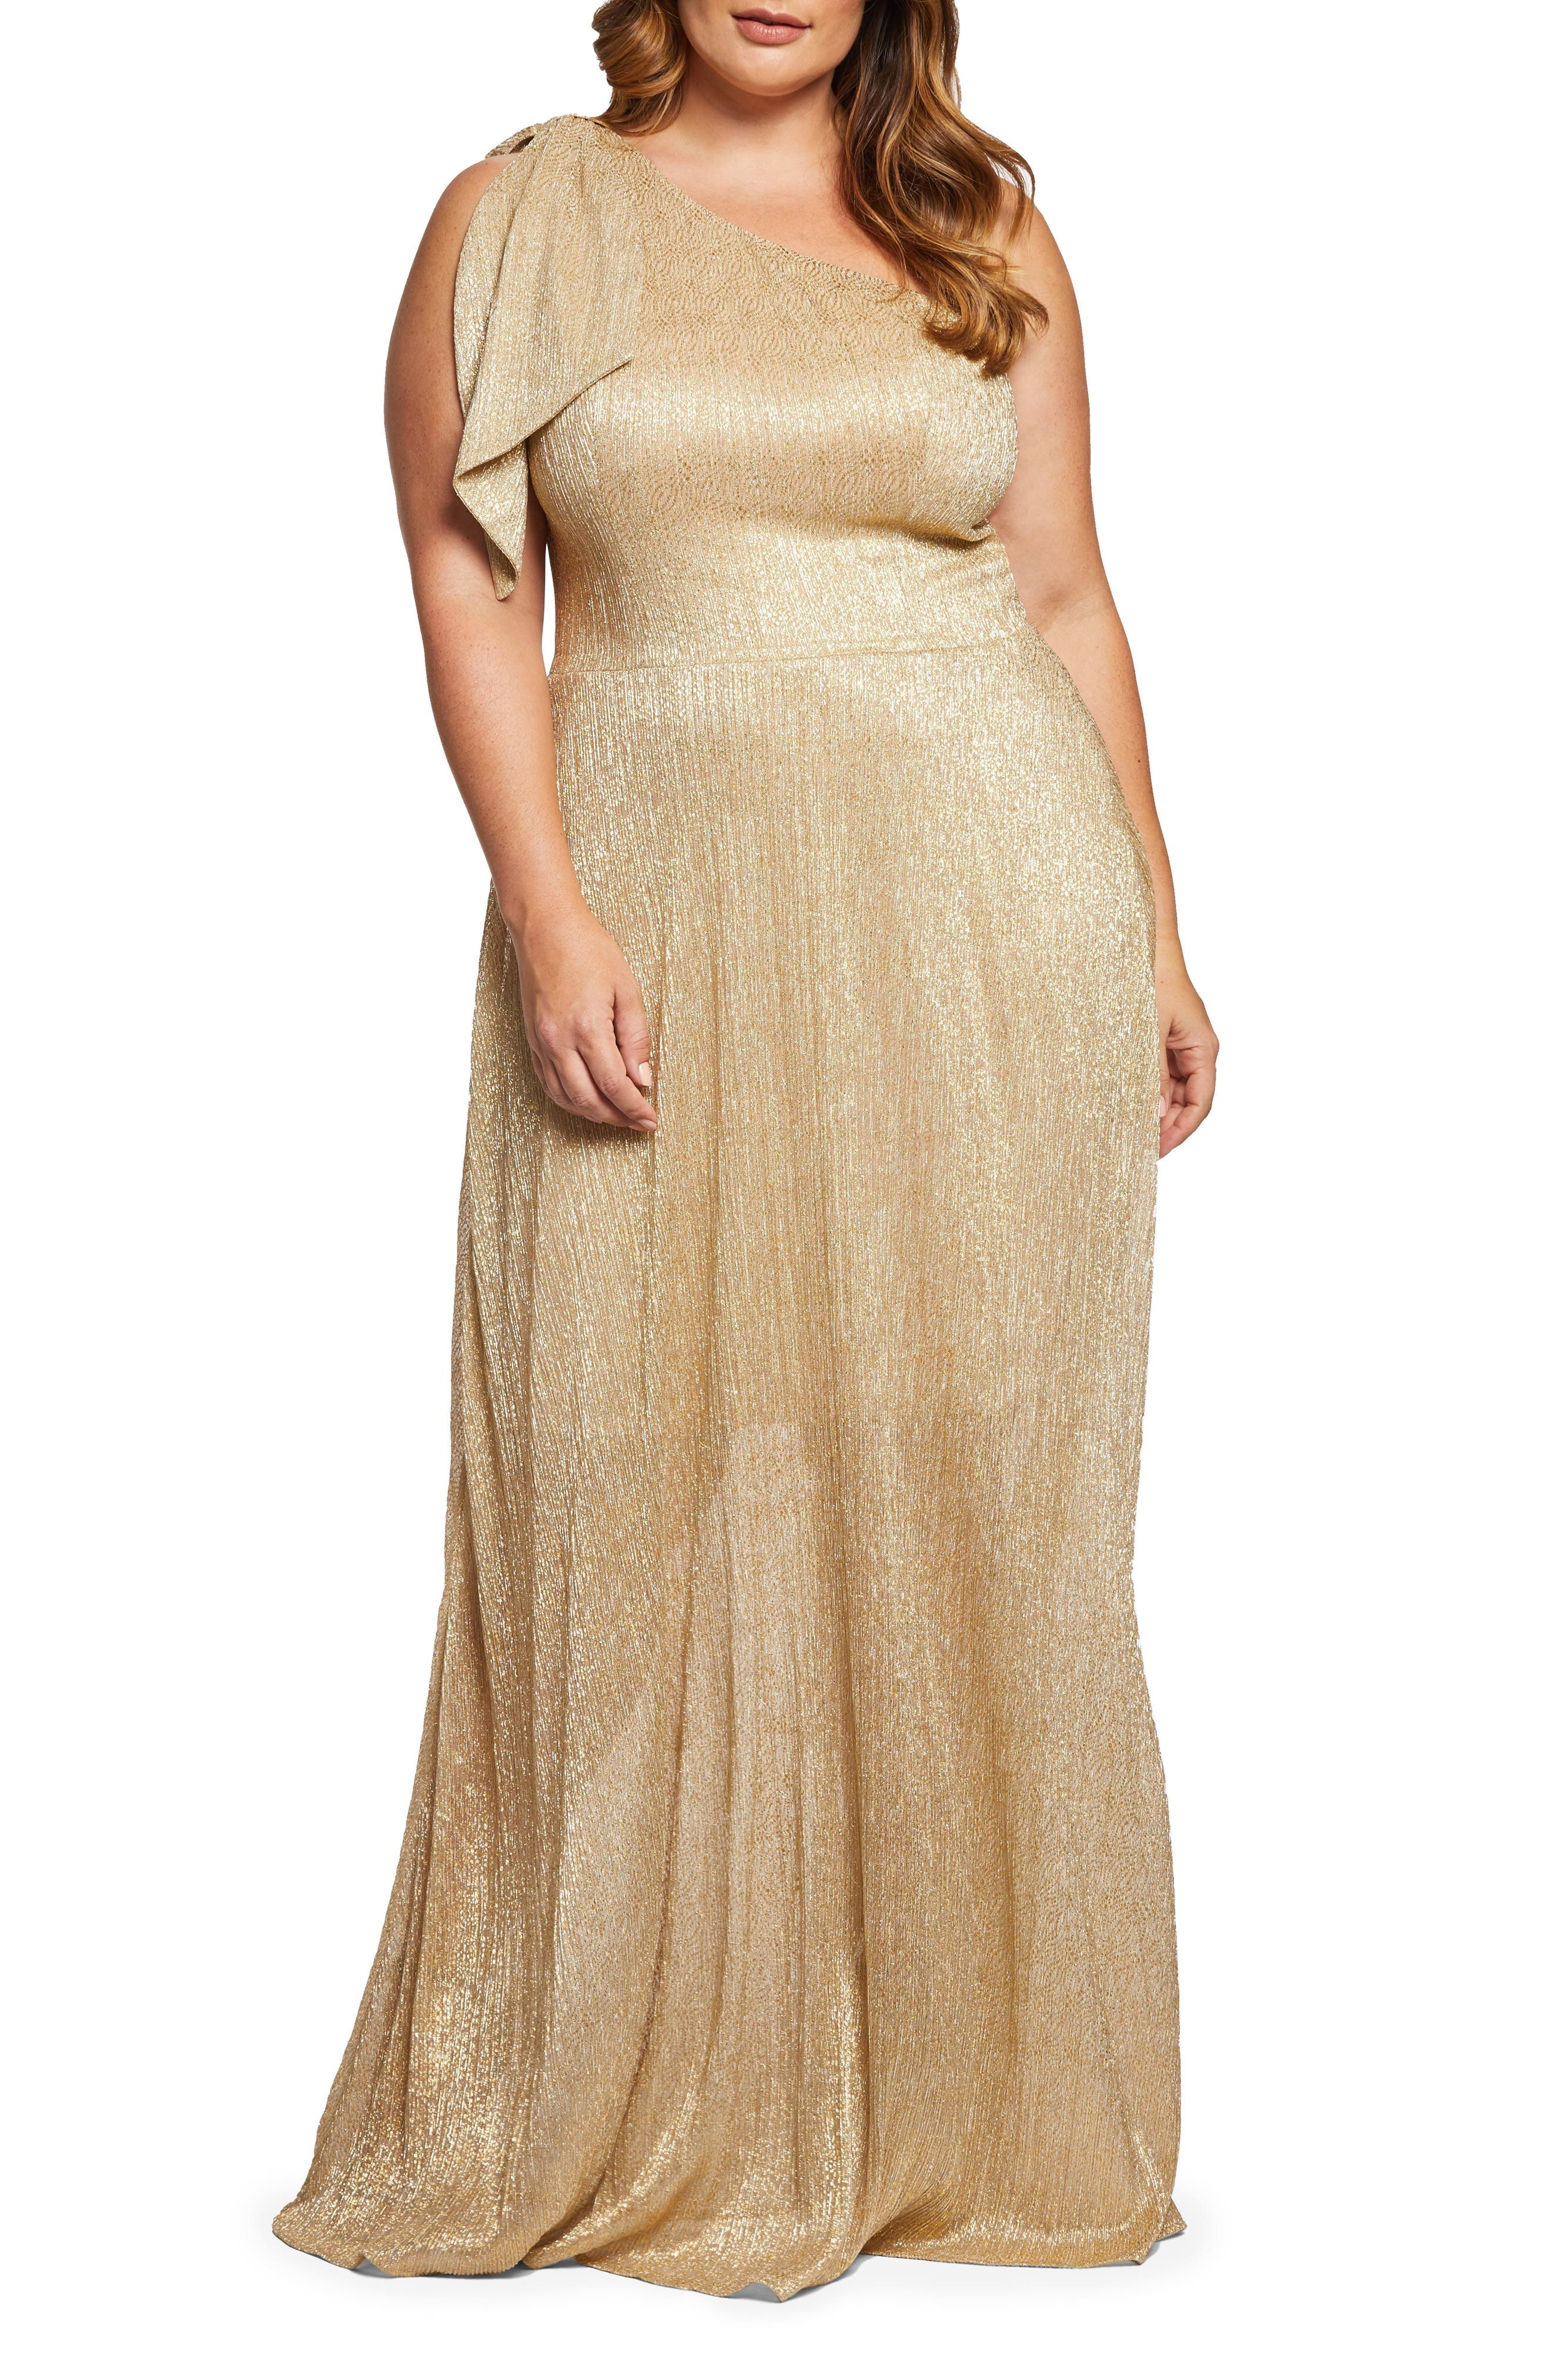 DRESS THE POPULATION, Savannah One-Shoulder Gown, Main thumbnail 1, color, GOLD